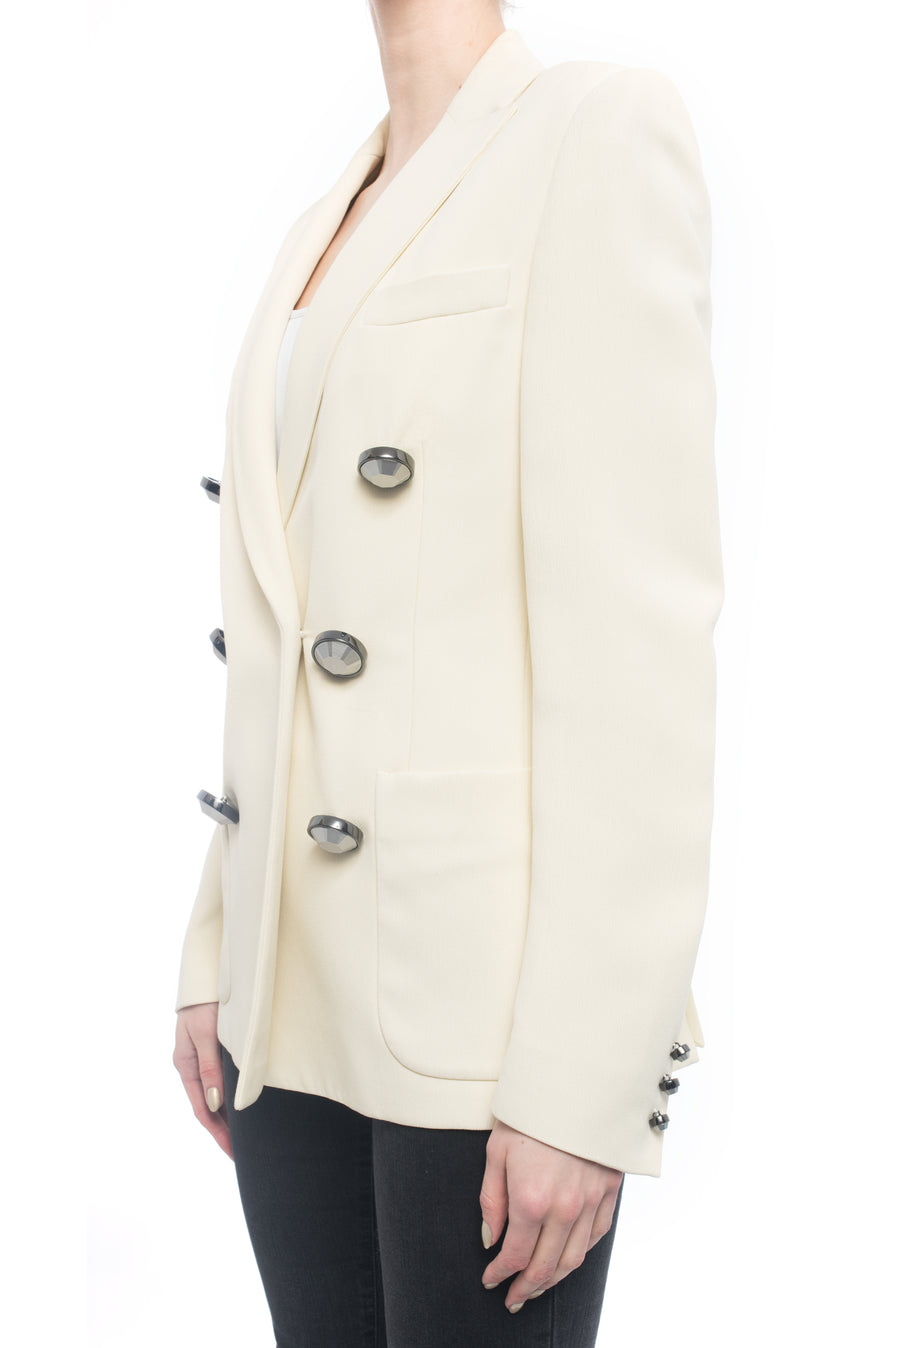 Christopher Kane Spring 2015 Runway Ivory Jacket with Silver Buttons - 4